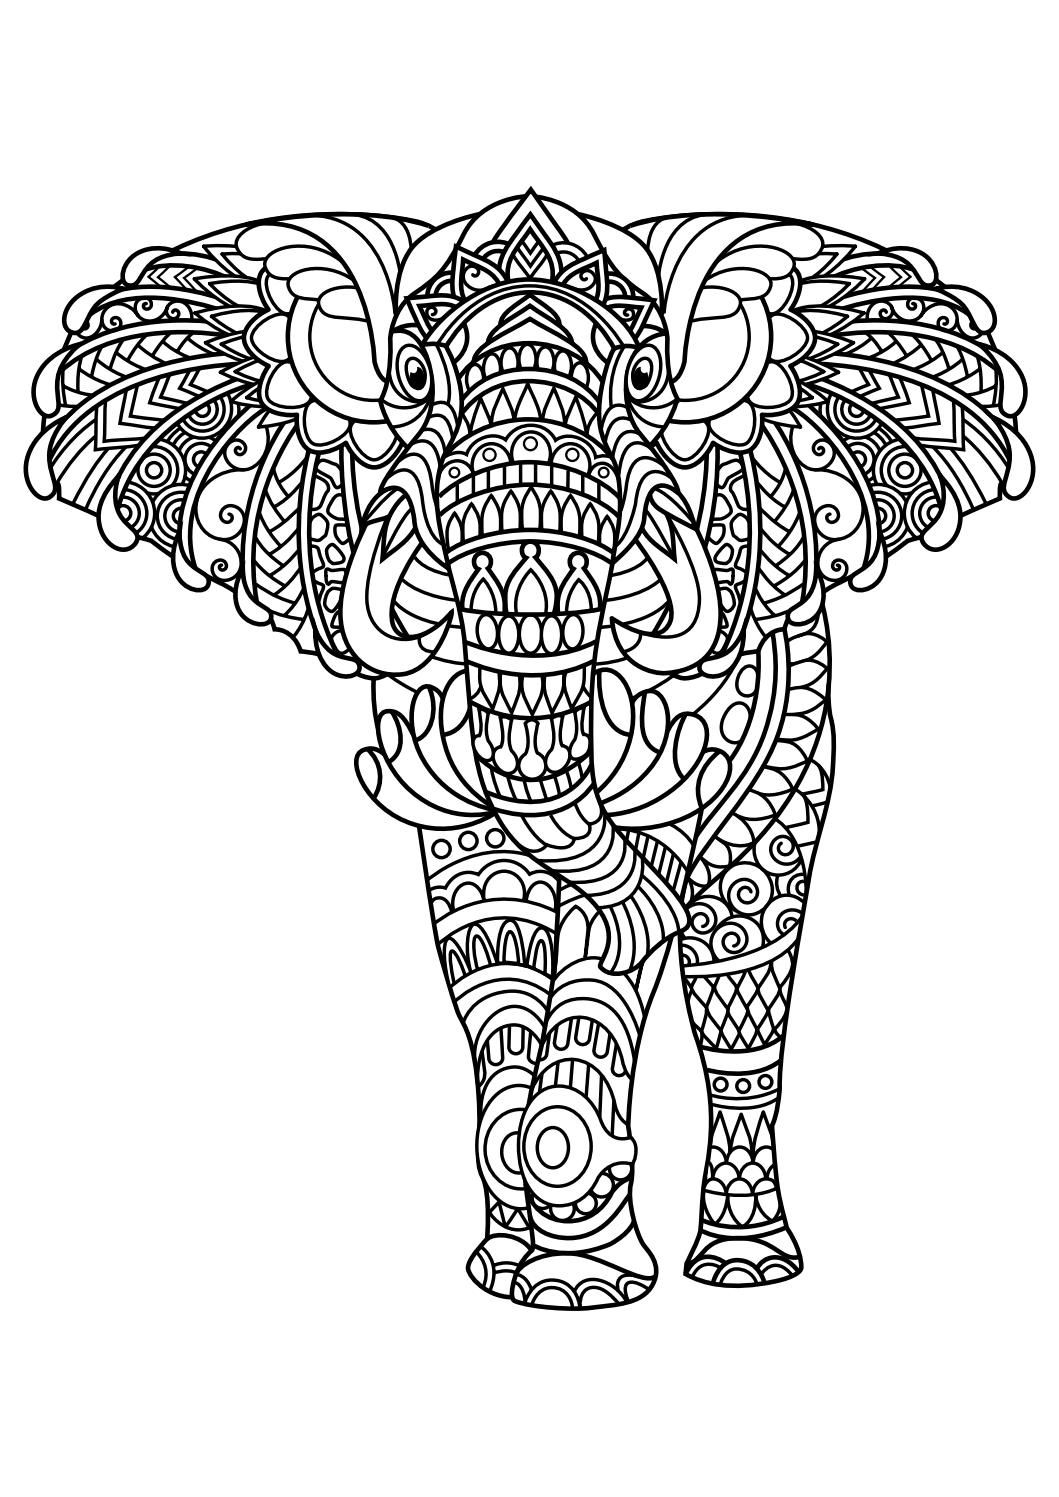 Animal coloring pages pdf Elephant coloring page, Horse